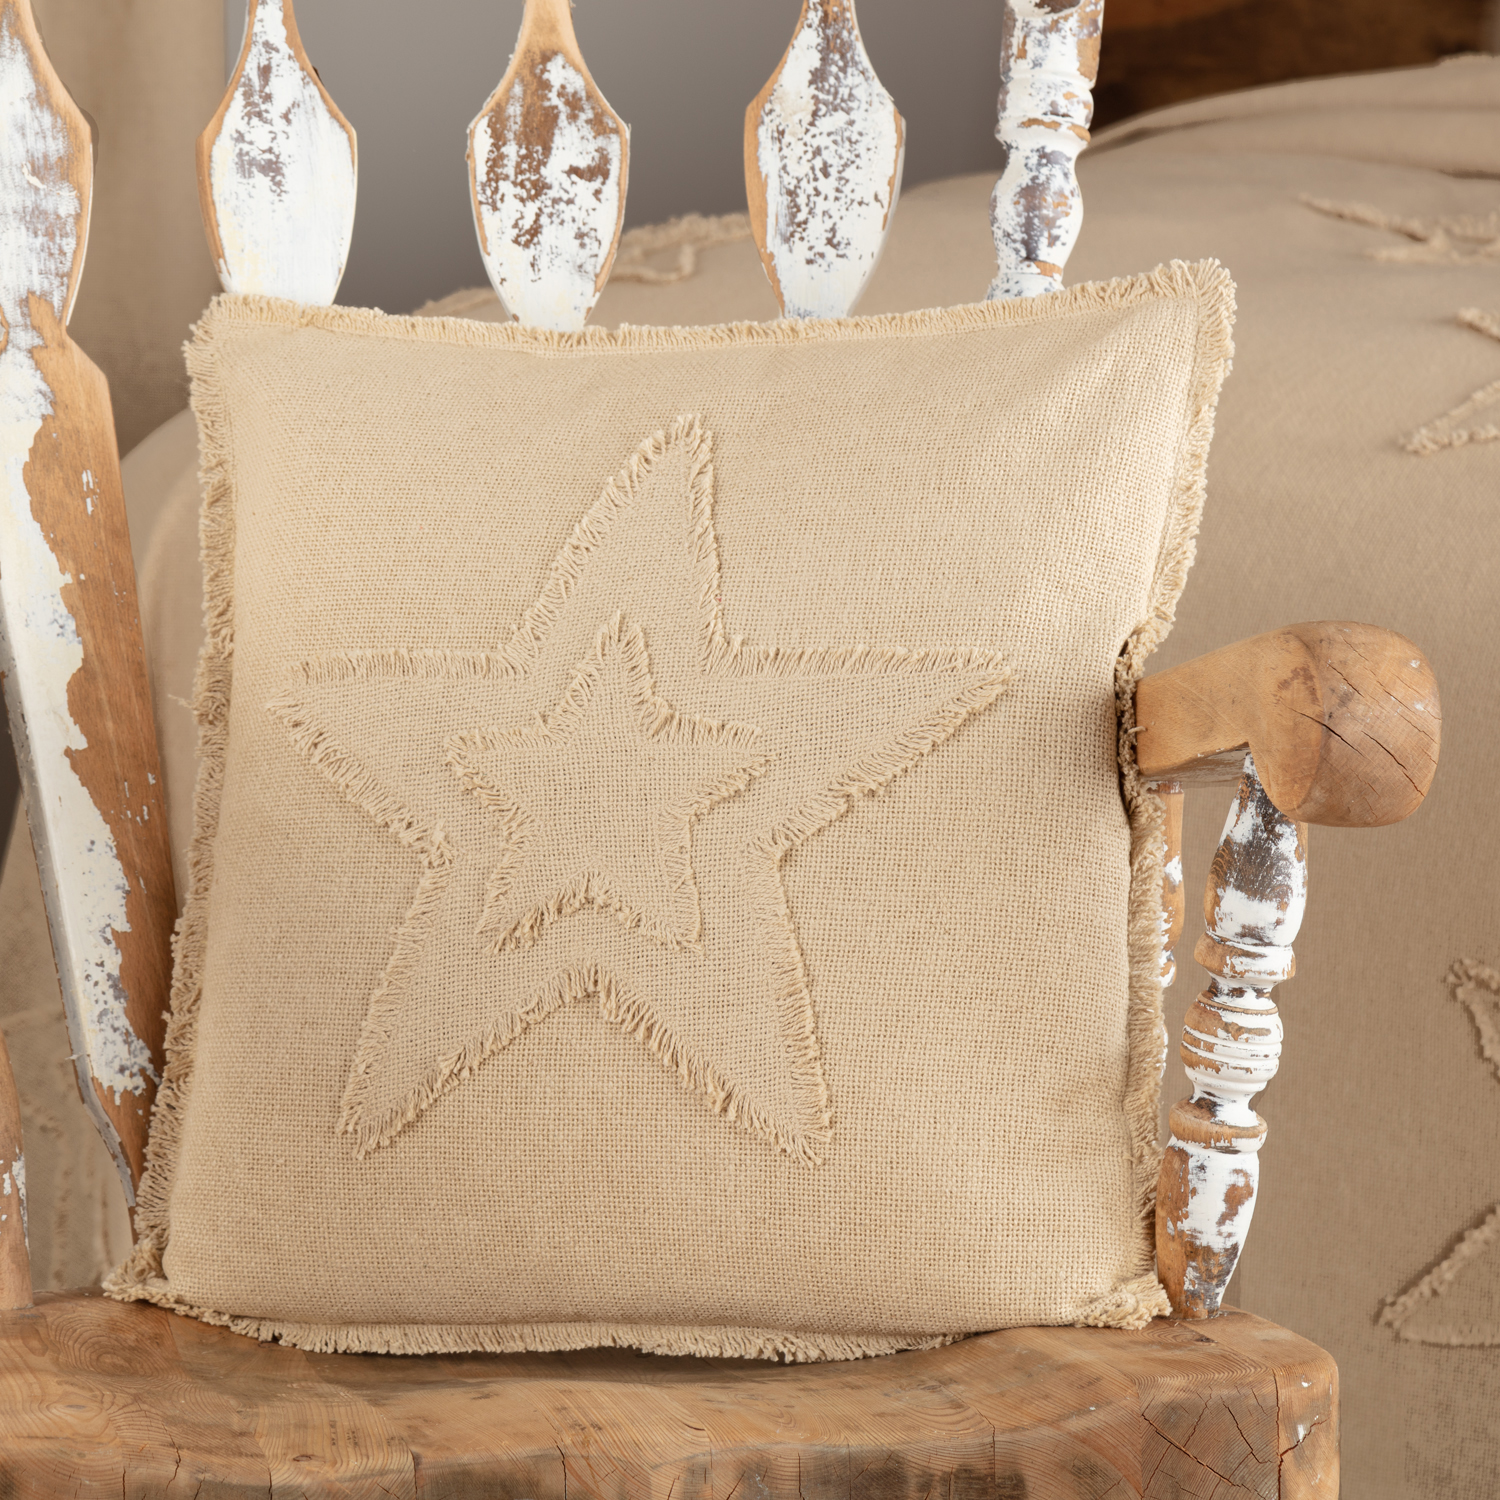 Burlap Vintage Star Pillow 18x18